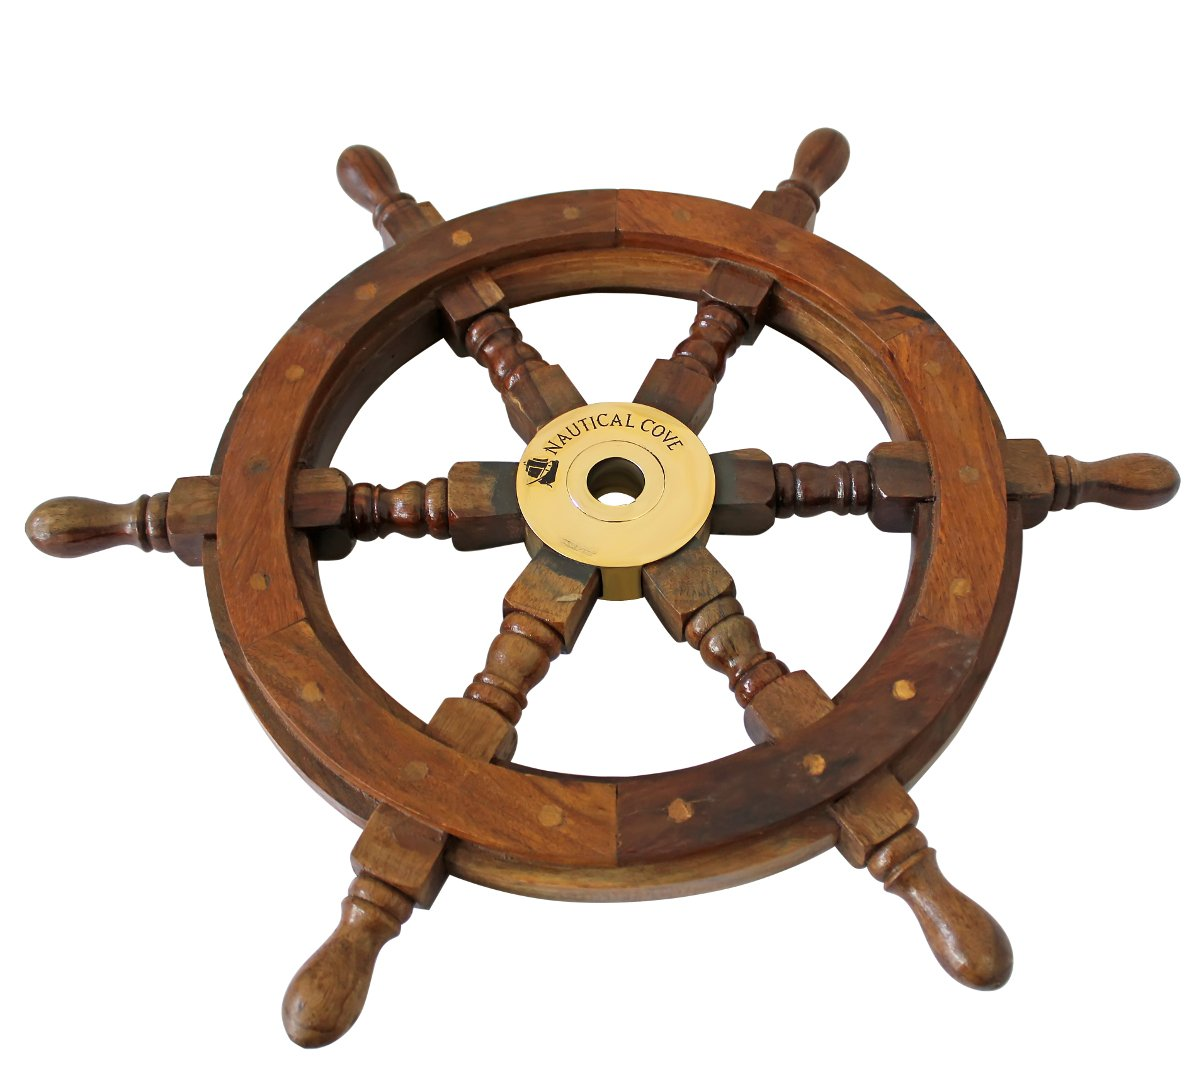 "Nautical Cove Wooden Ship Wheel 18"" Pirate Decor, Ships Wheel for Home, Boats, and Walls"